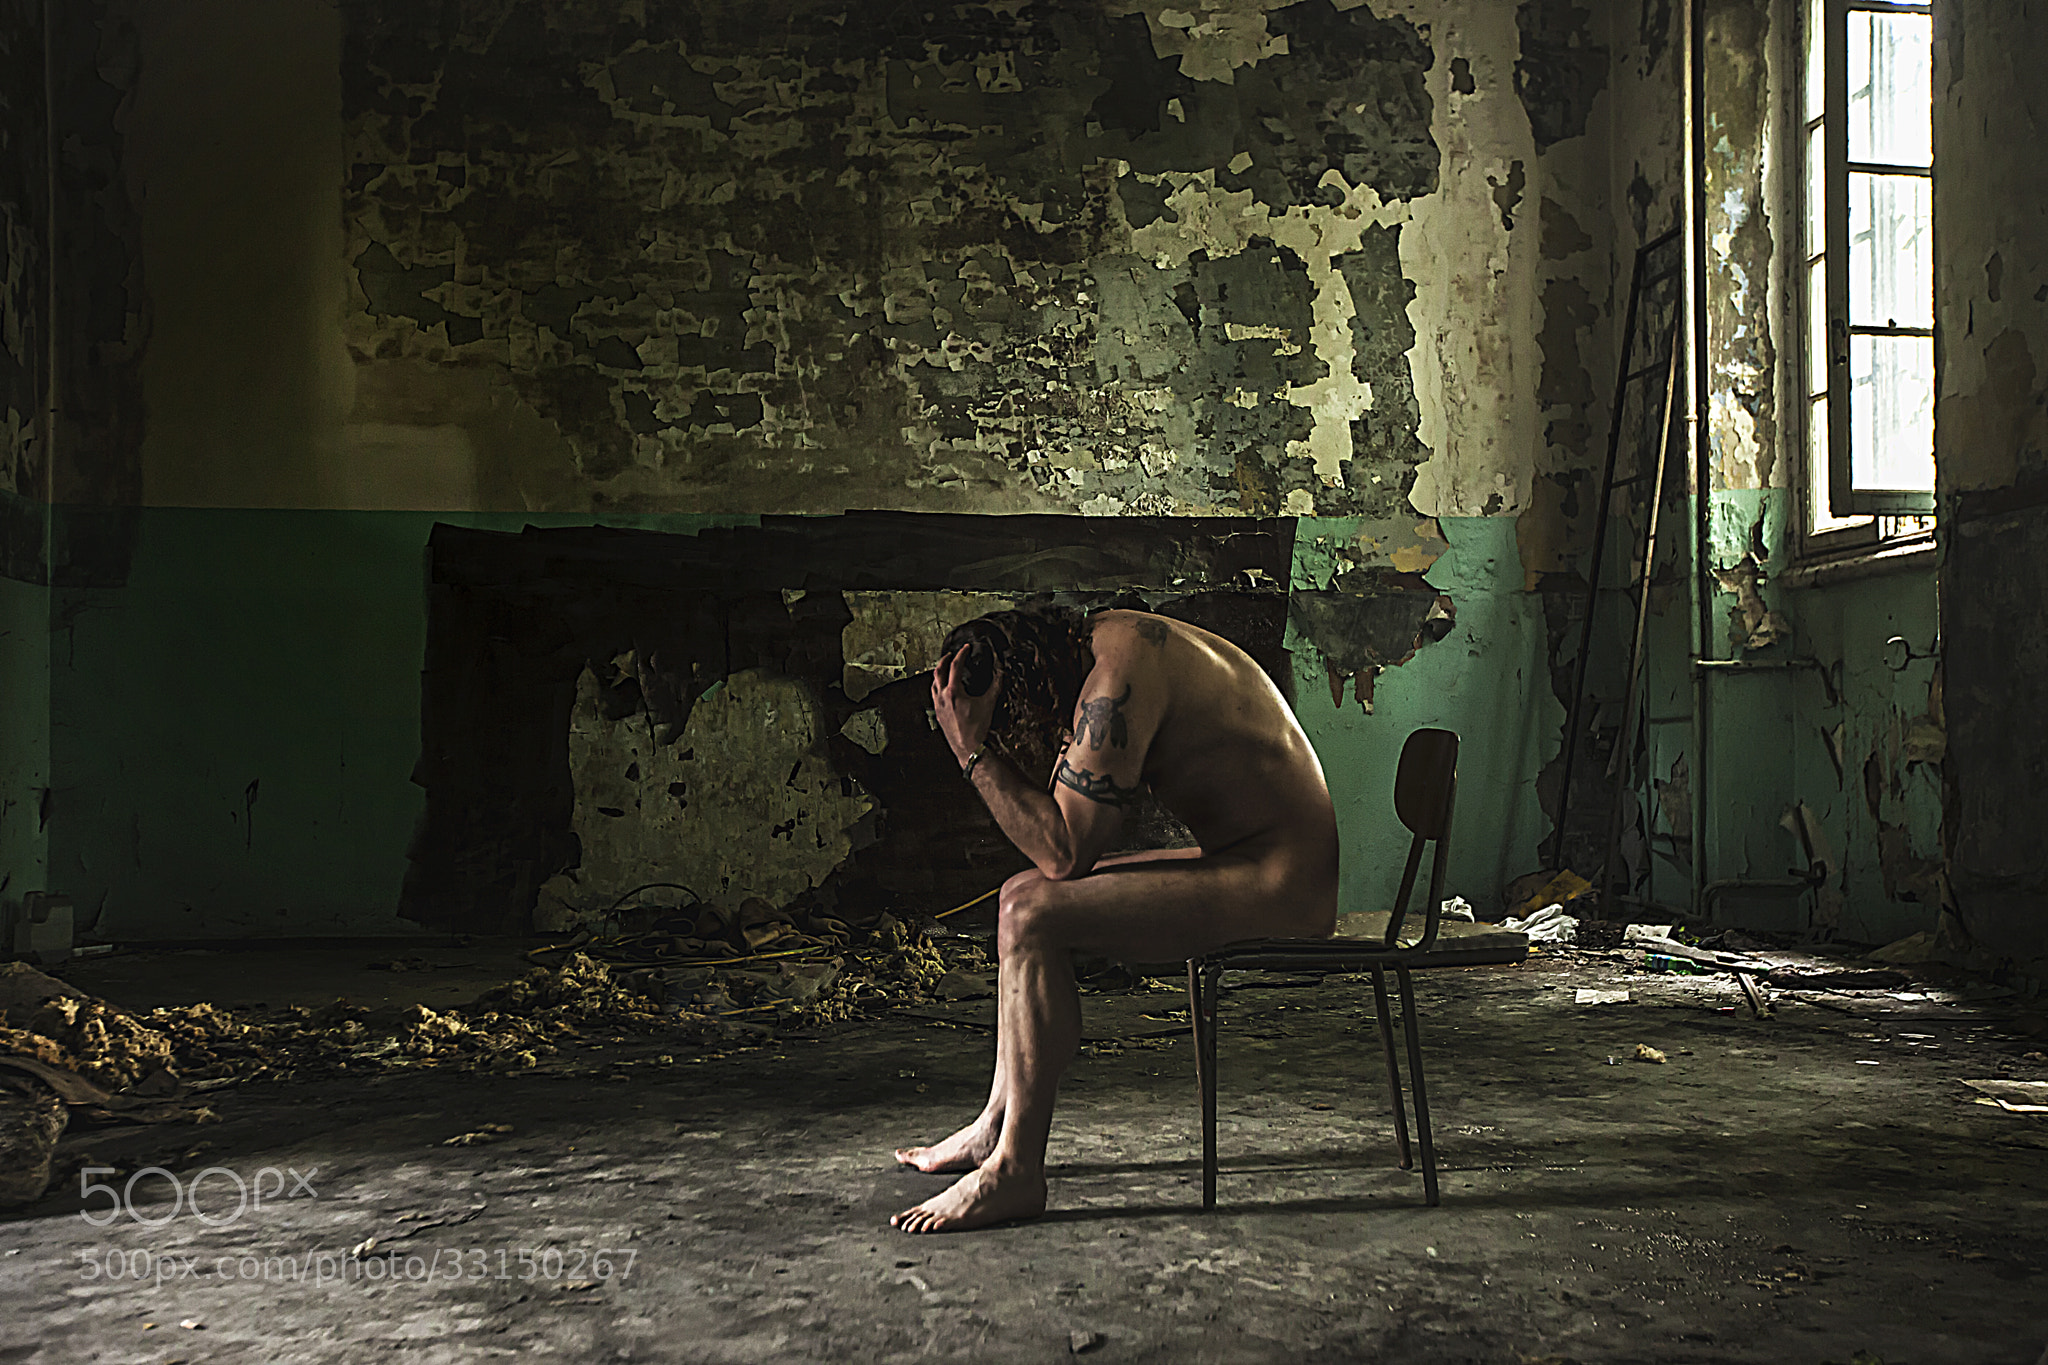 Photograph naked despair by Marco Redaelli on 500px